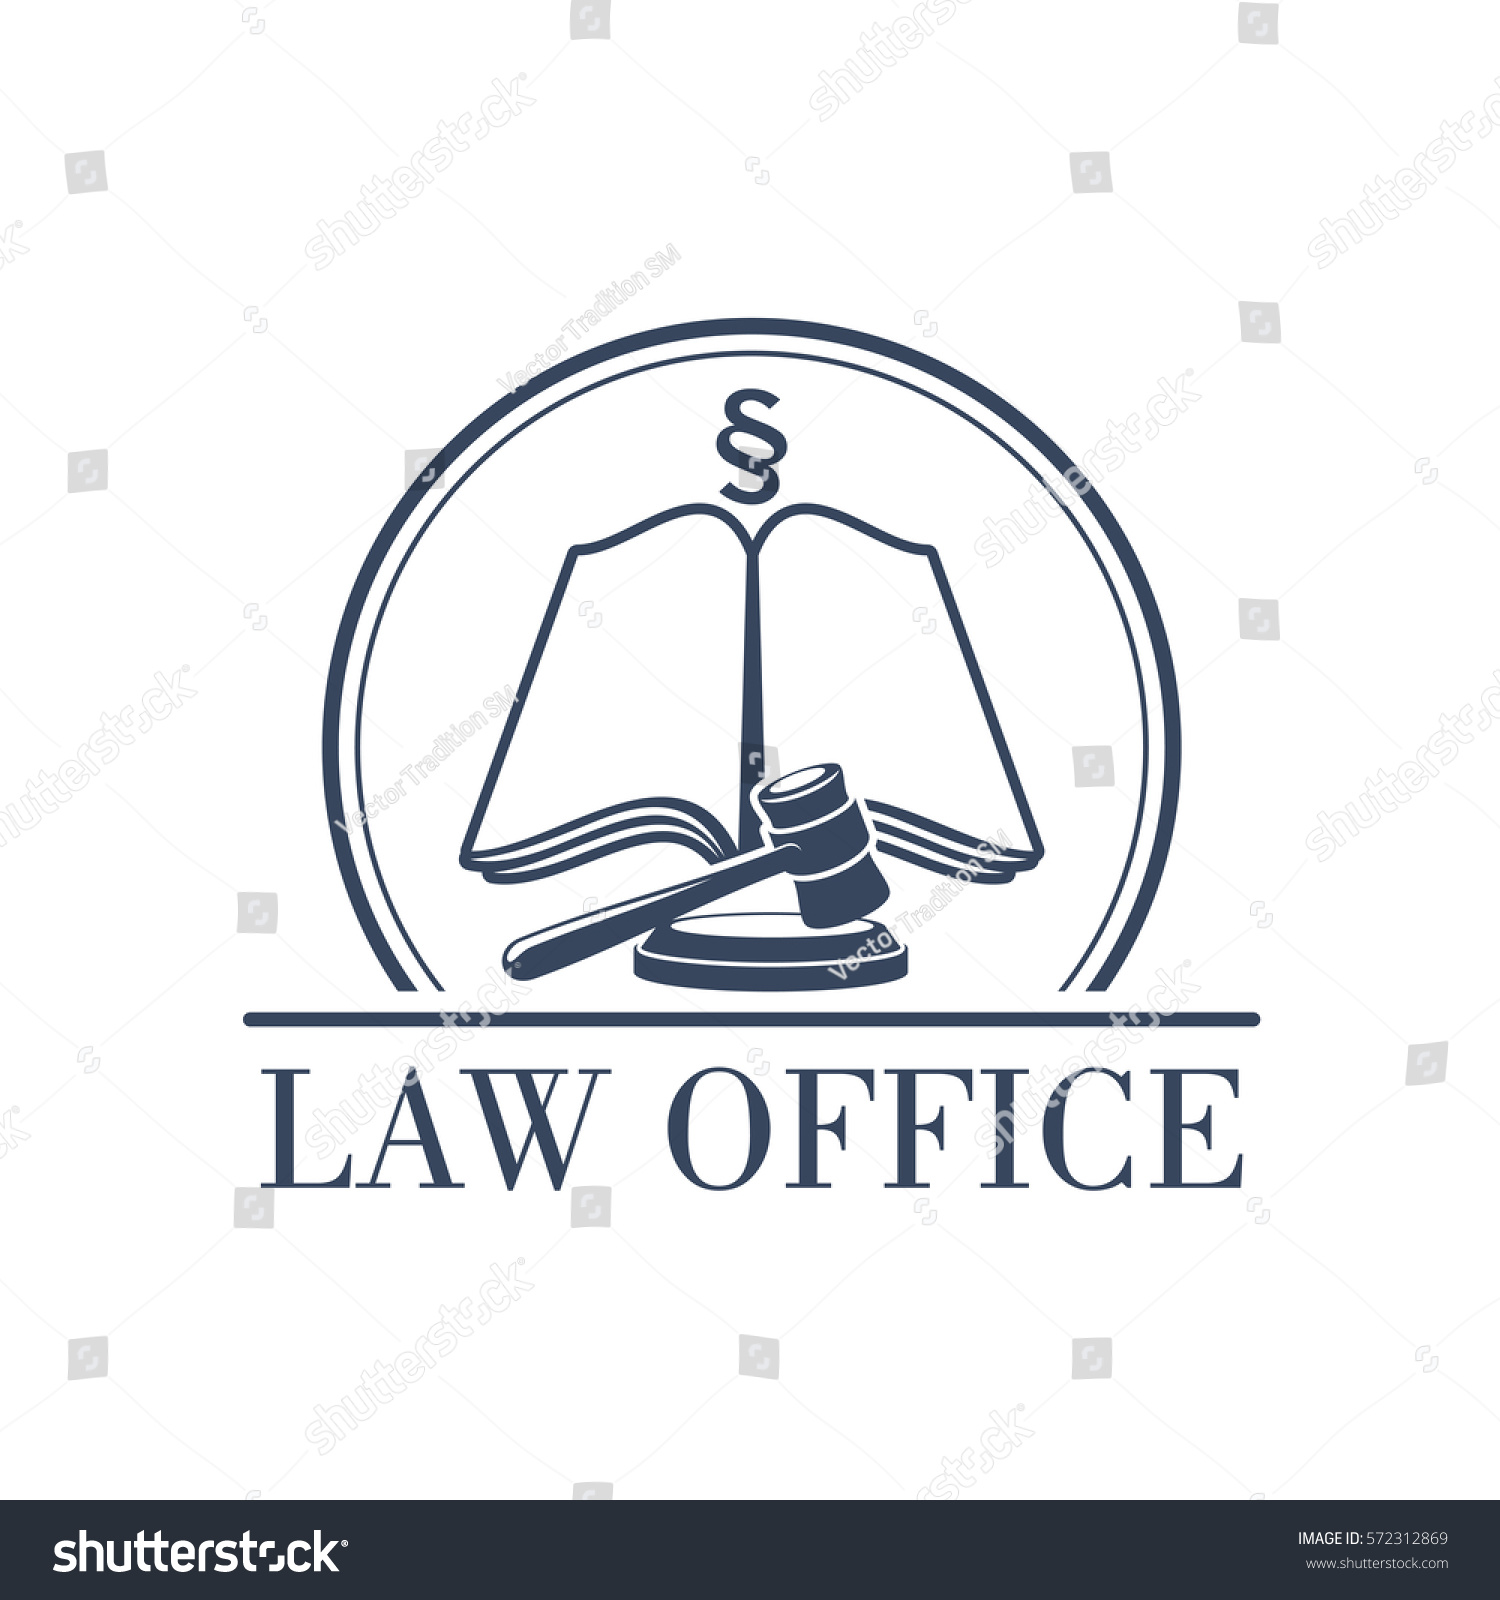 Legal office icon symbol judge gavel stock vector 572312869 legal office icon with symbol of judge gavel justice law code silcrow section sign buycottarizona Choice Image